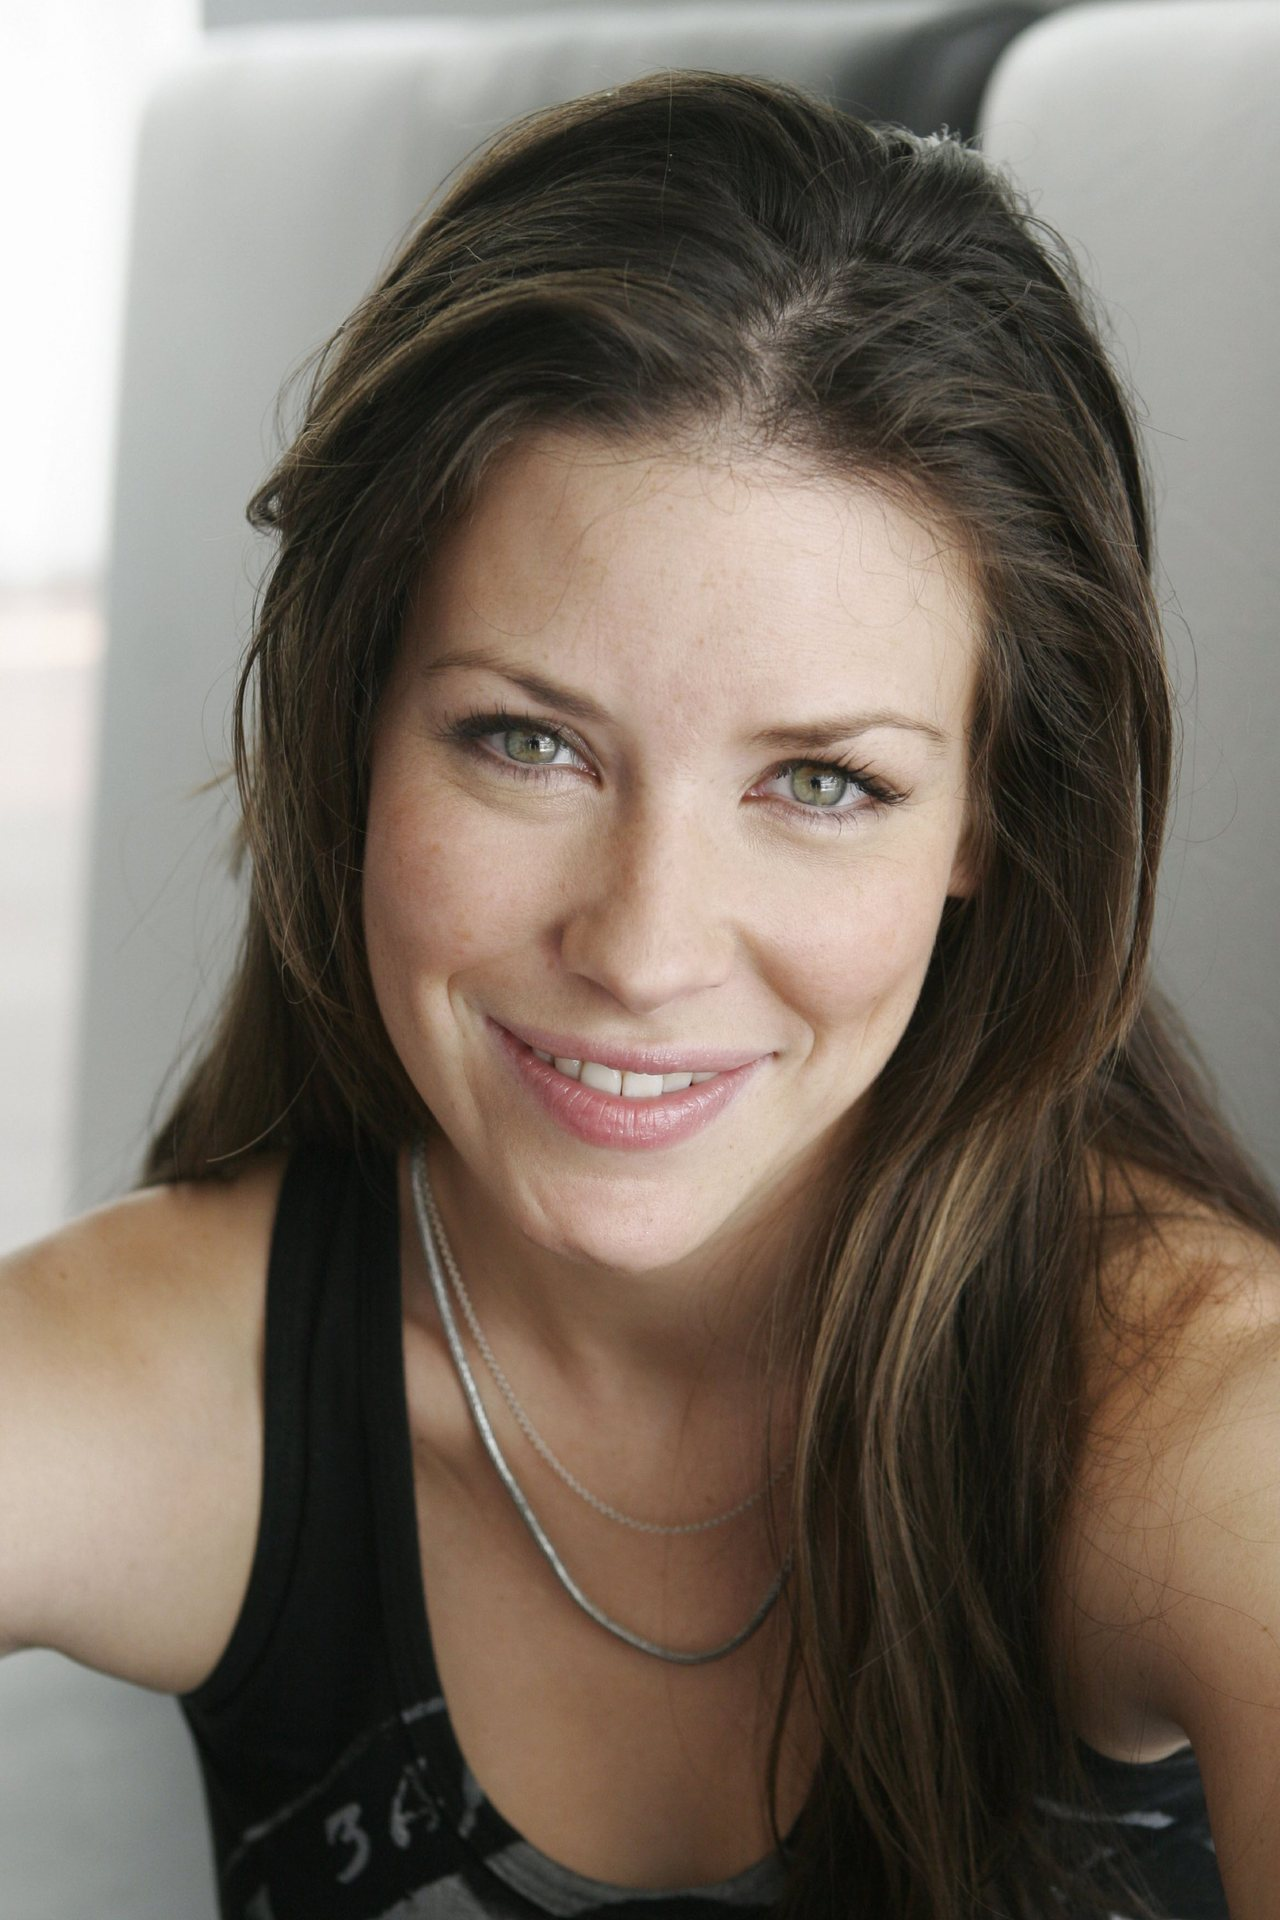 evangeline lilly images hd full hd pictures